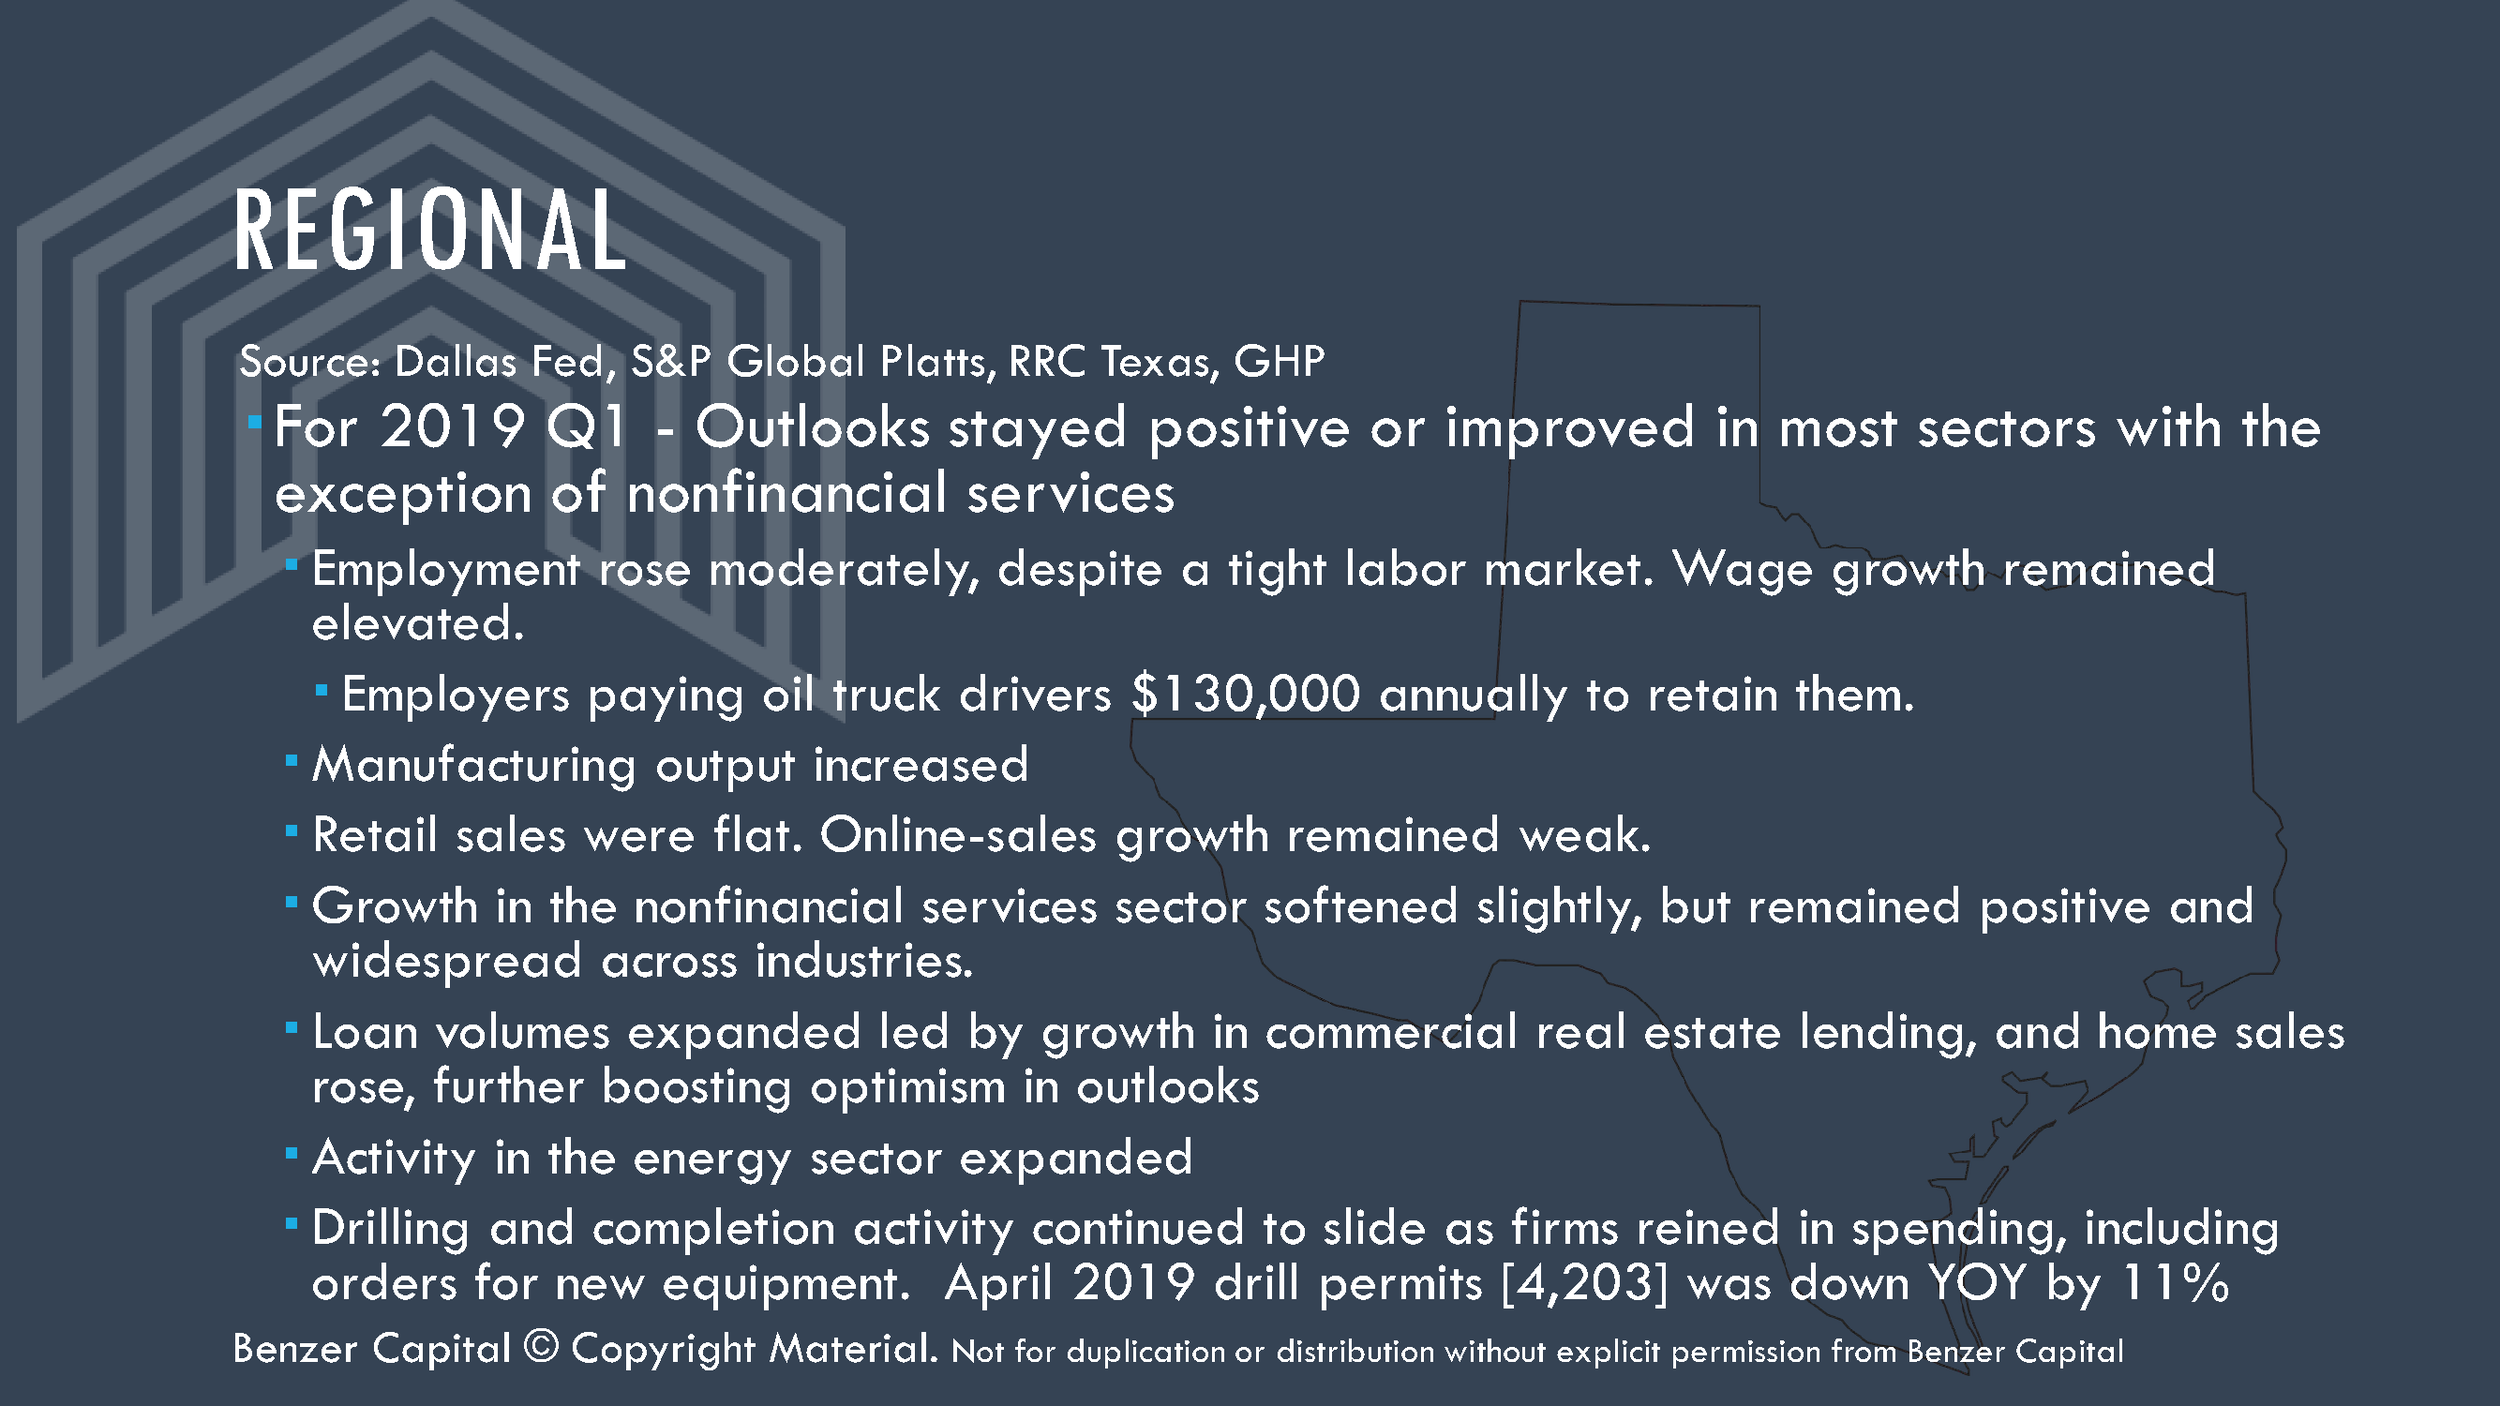 Benzer Capital Economic Update 2019Q2_Page_4.png